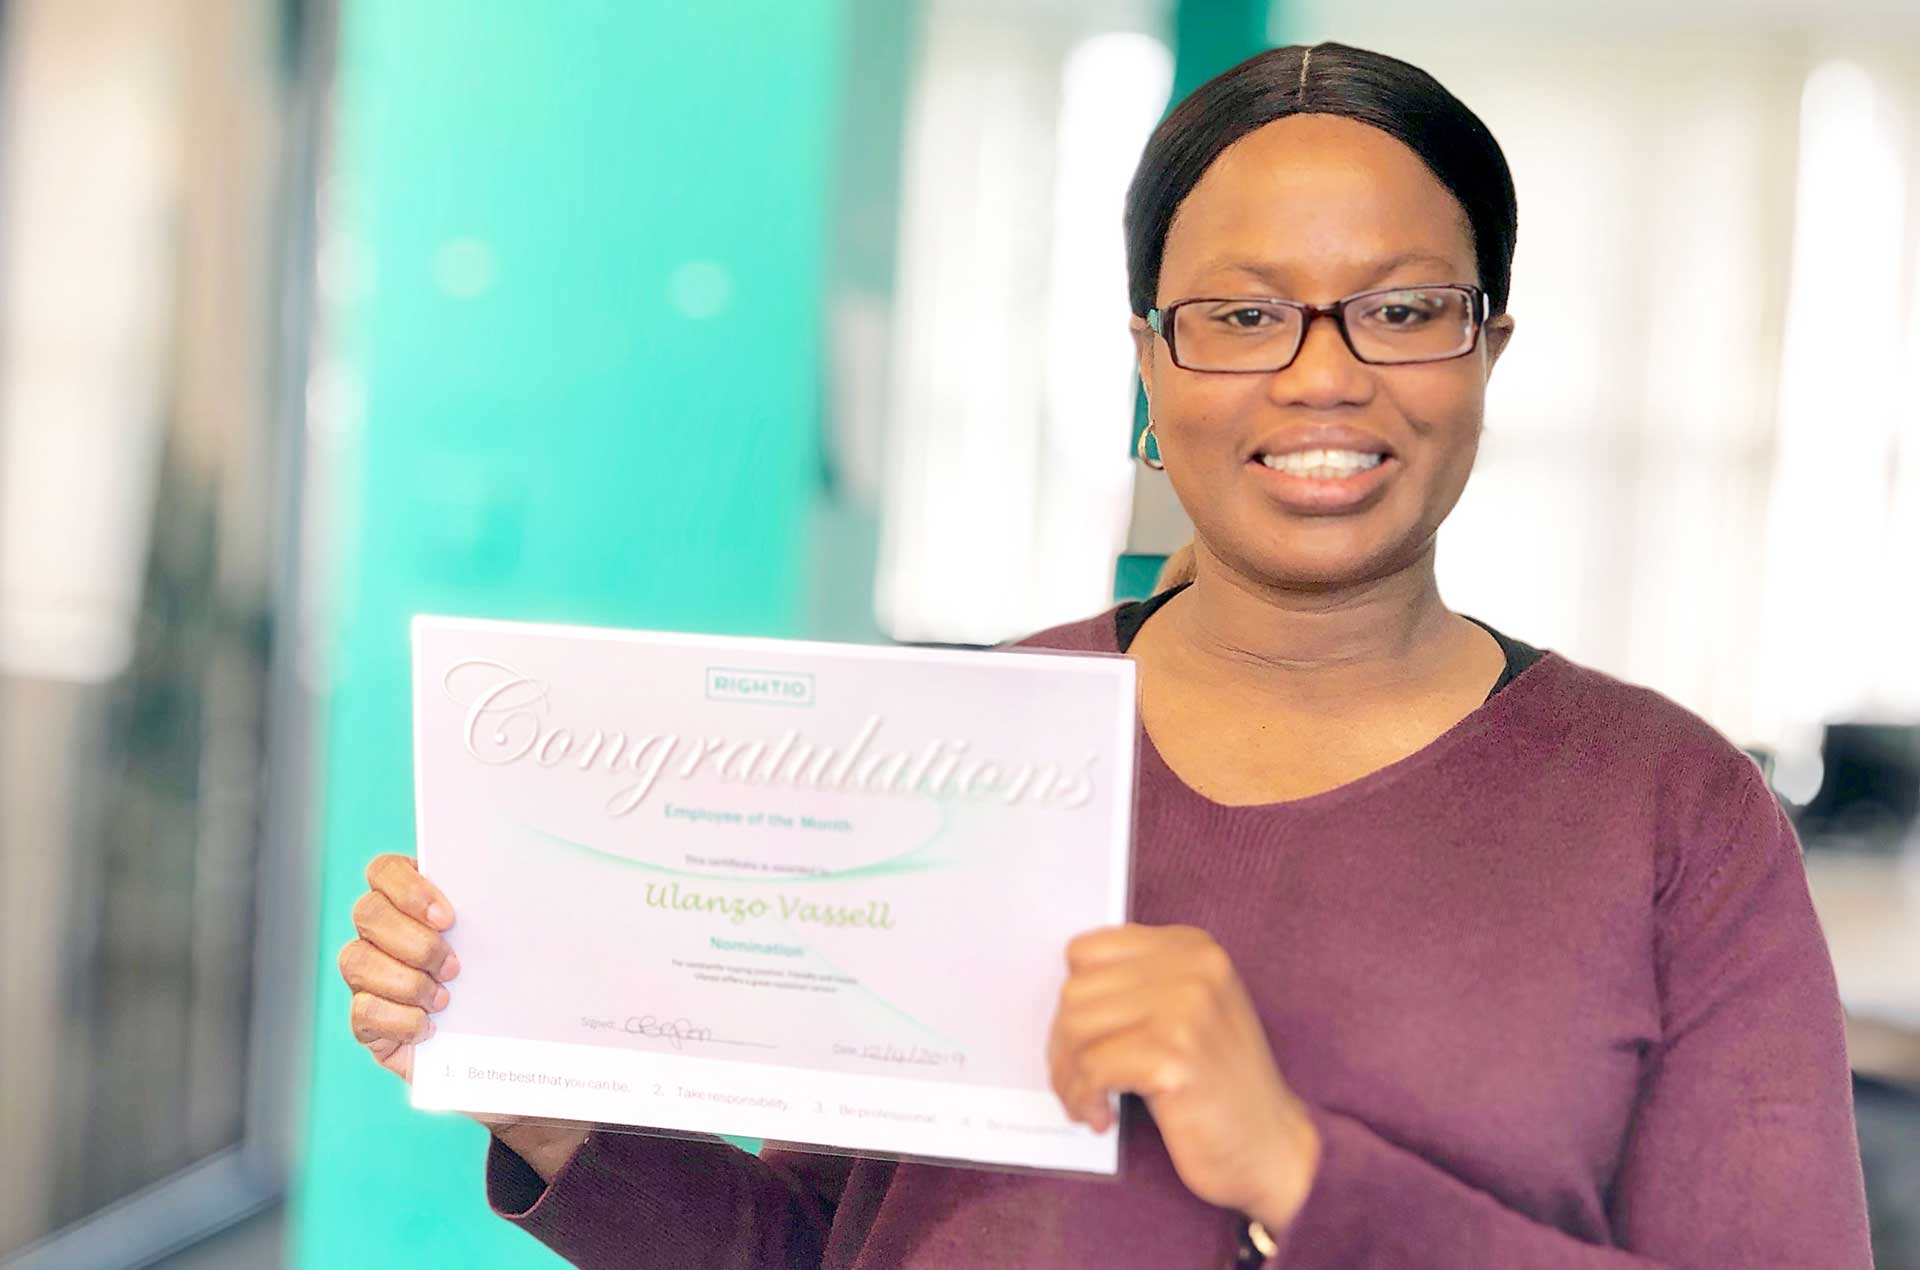 Employee of the month Ulanzo Vassell in Manchester